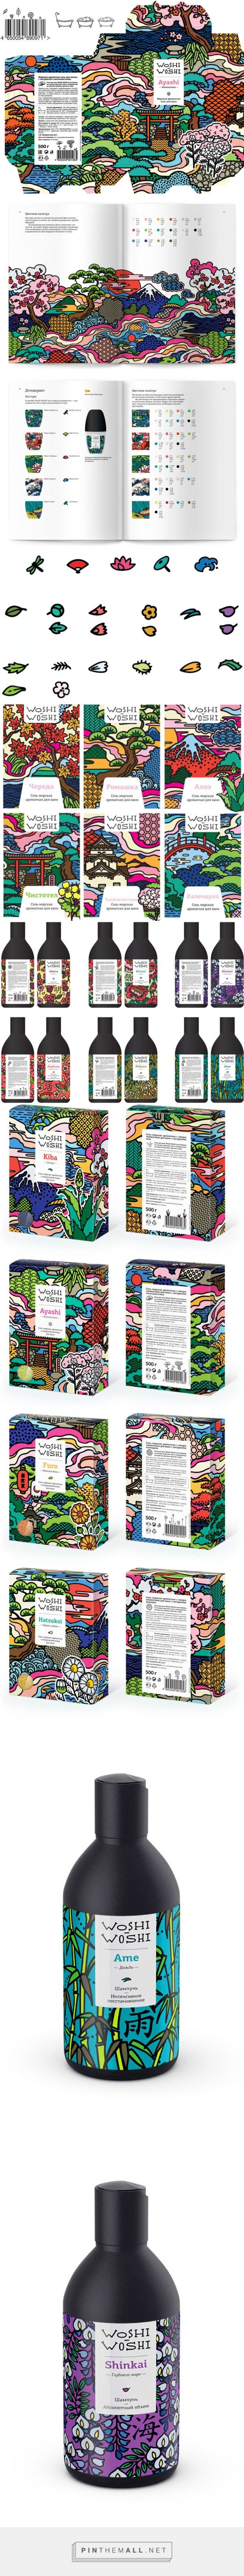 Art Lebedev Studio - Woshi Woshi curated by Packaging Diva PD. #package #design #illustration #colorful #cool